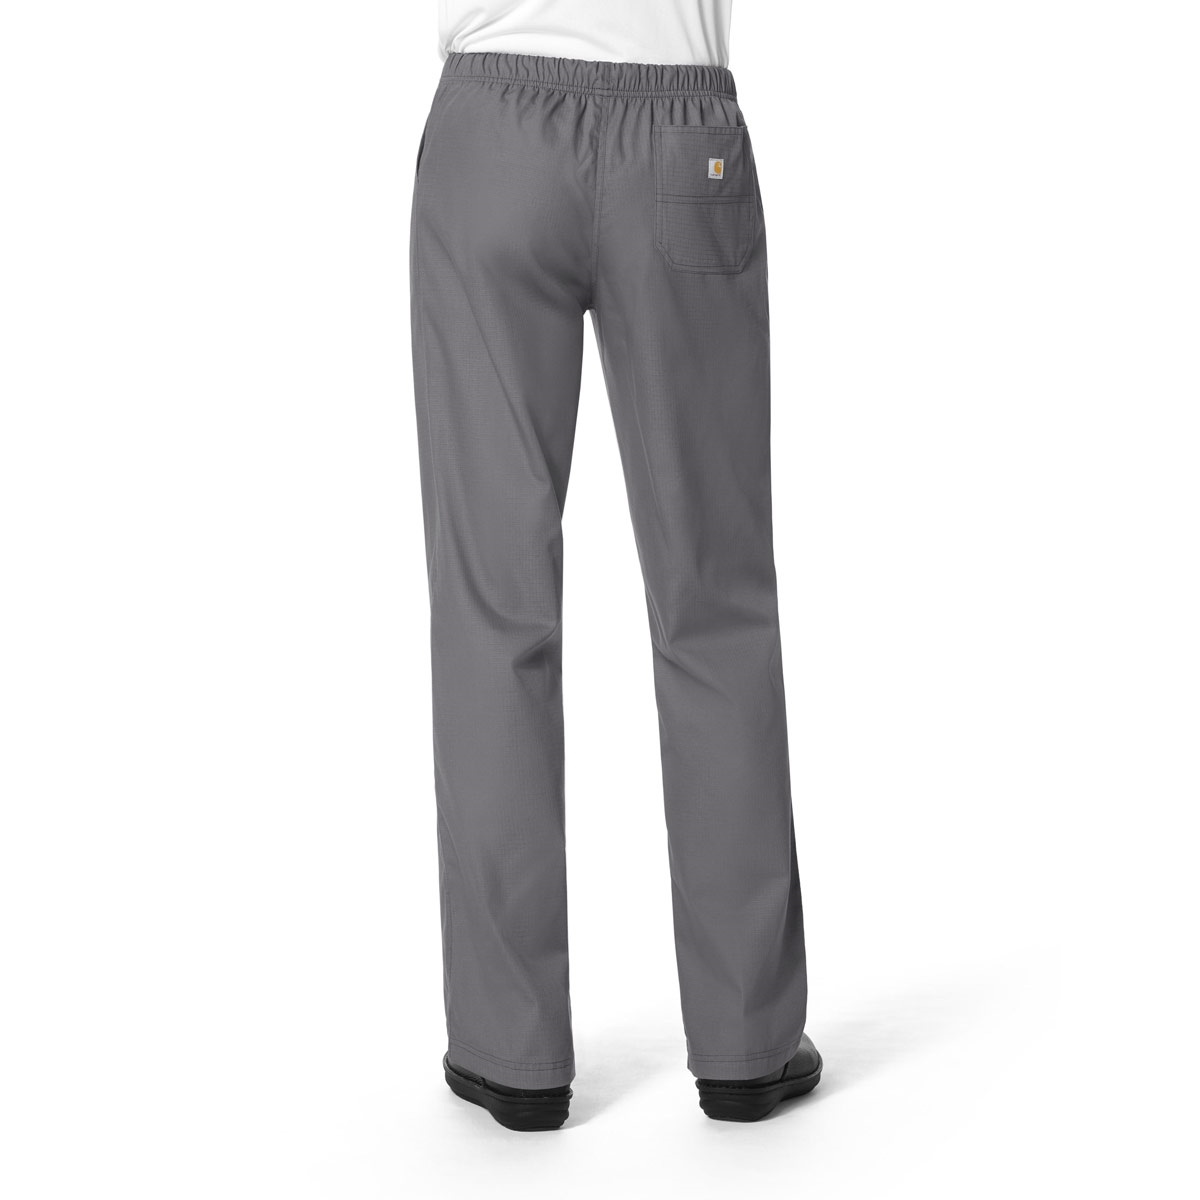 04a6dc2fd5c Lower Rise Ripstop Scrub Pants By Carhartt. Find Yours Today!